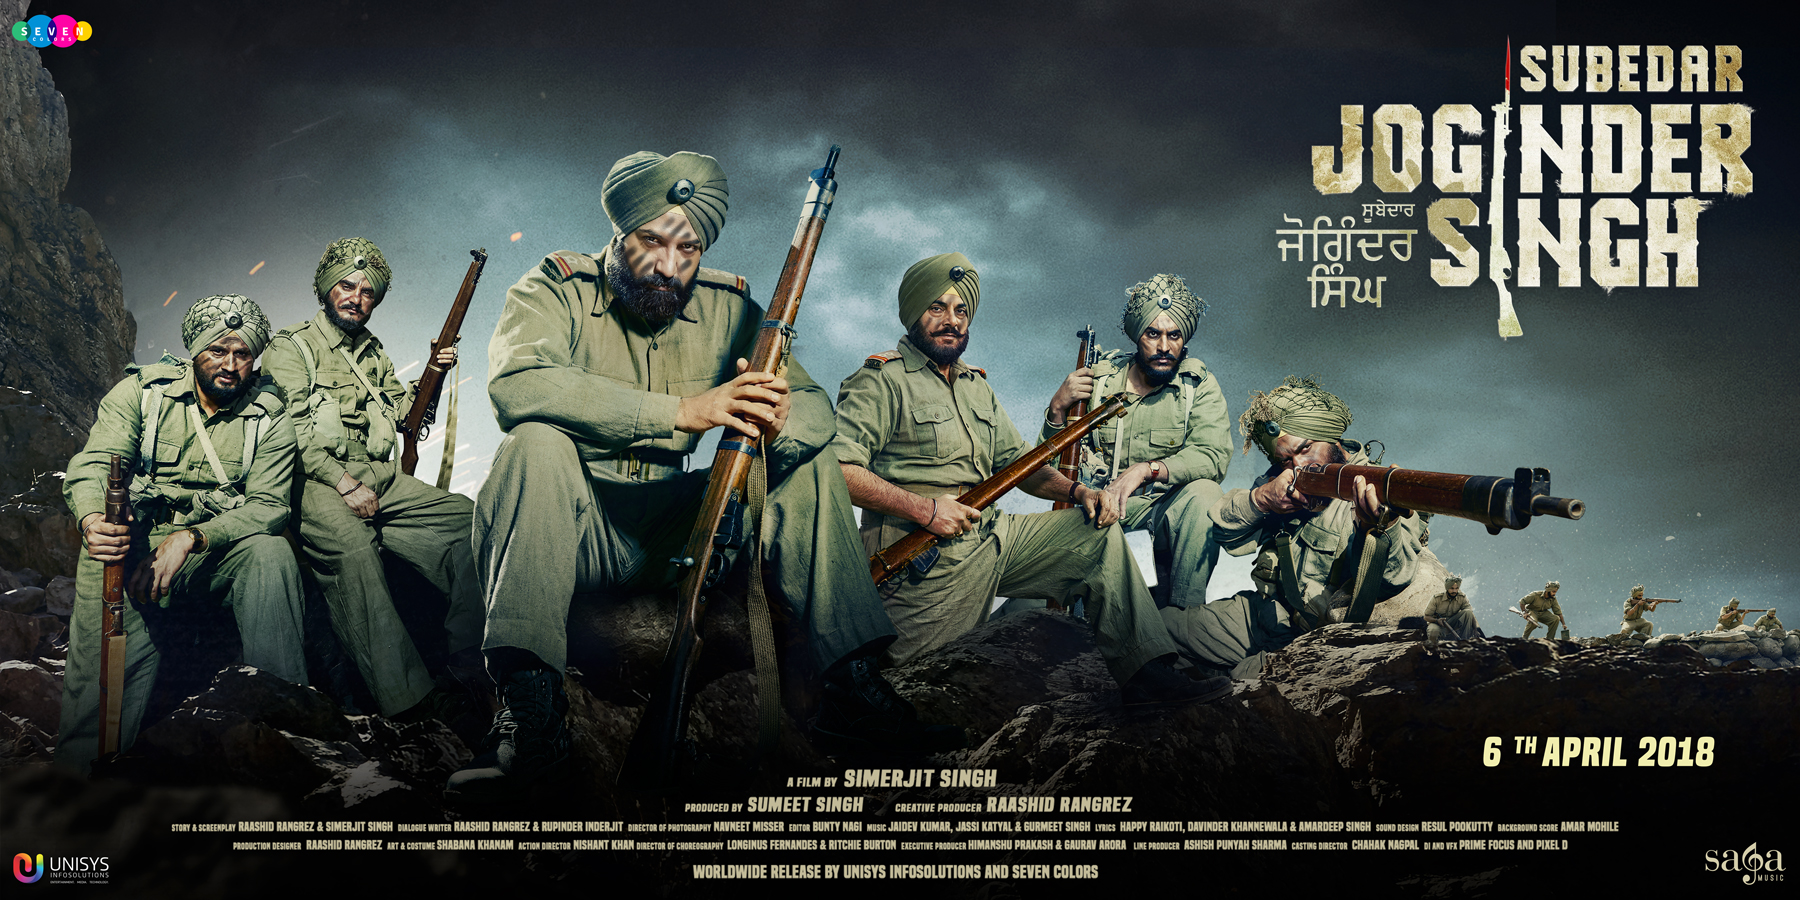 Trailer & Poster Launch of the 'Subedar Joginder Singh'